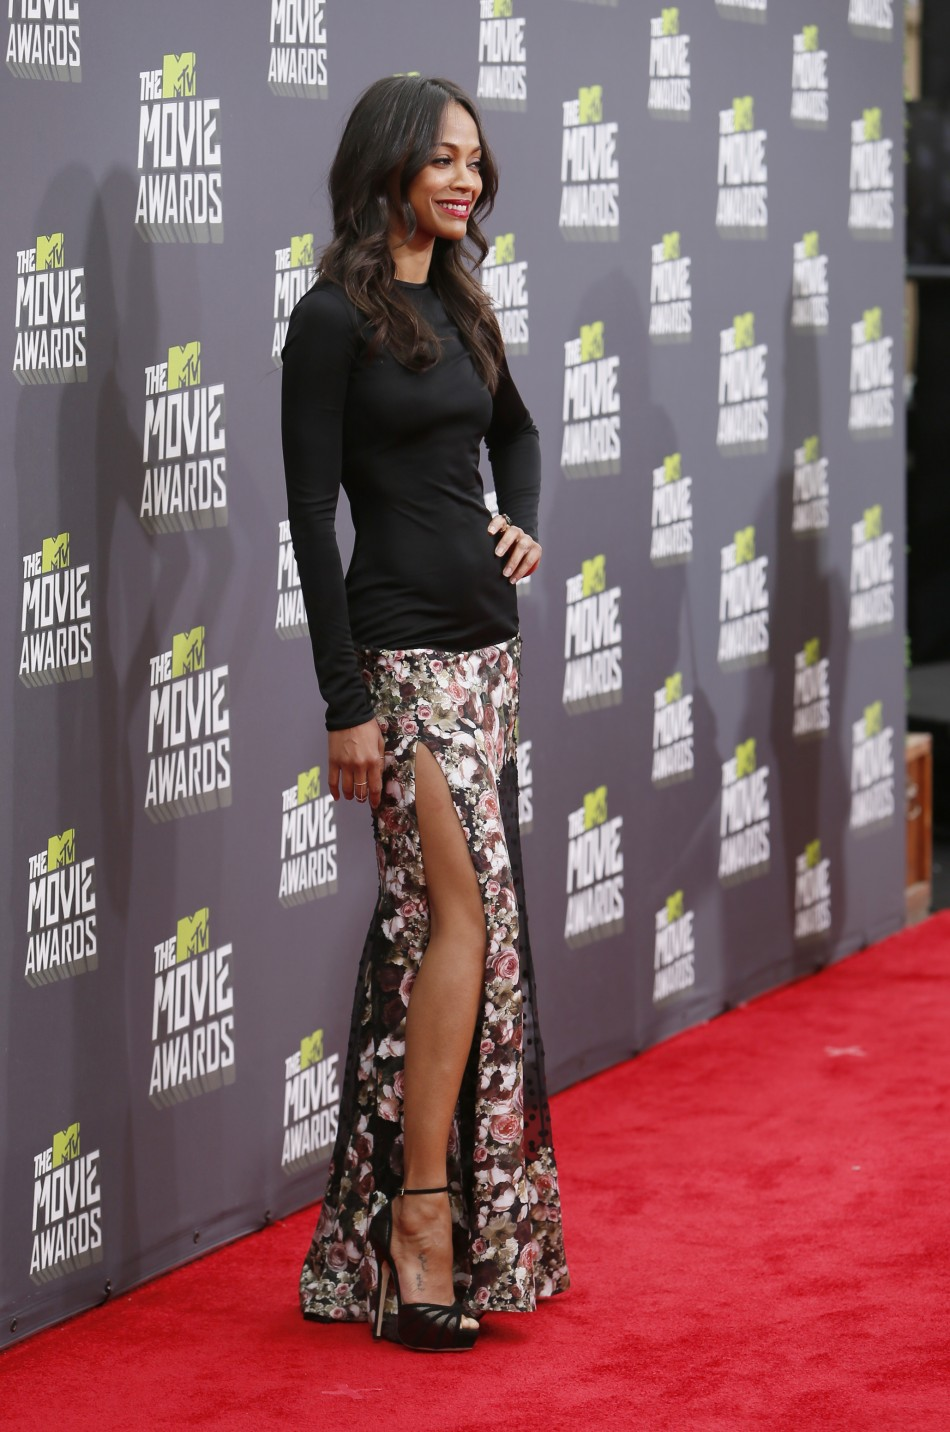 Actress Zoe Saldana poses as she arrives at the 2013 MTV Movie Awards in Culver City, California April 14, 2013.